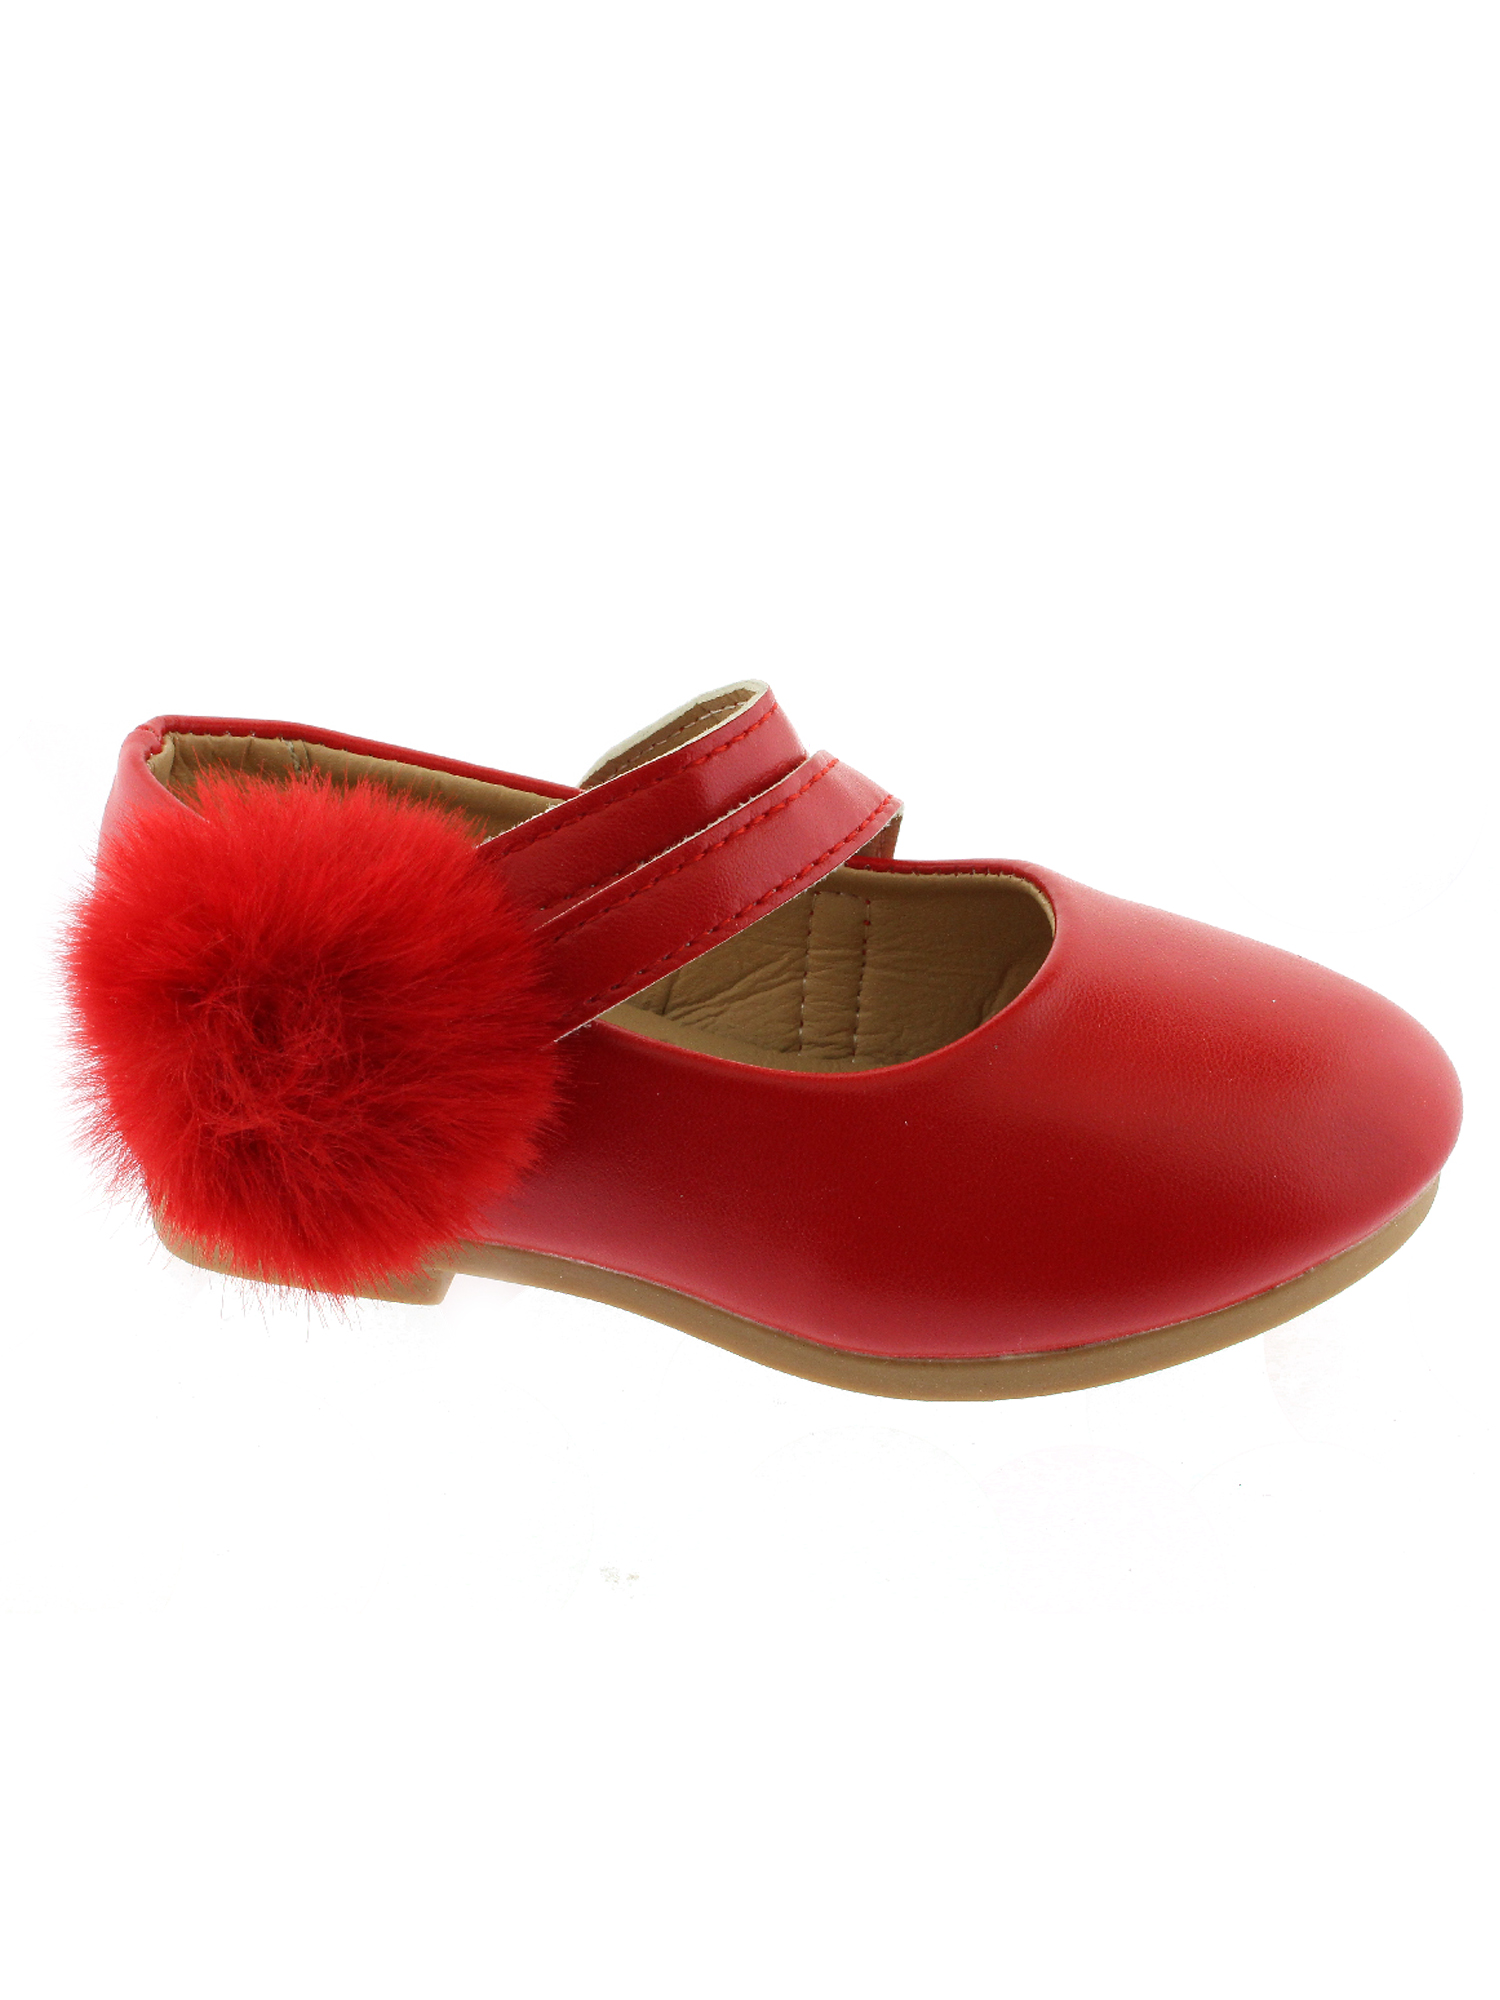 Kate Girls Red Double Strap Pom-Pom Mary Jane Shoes